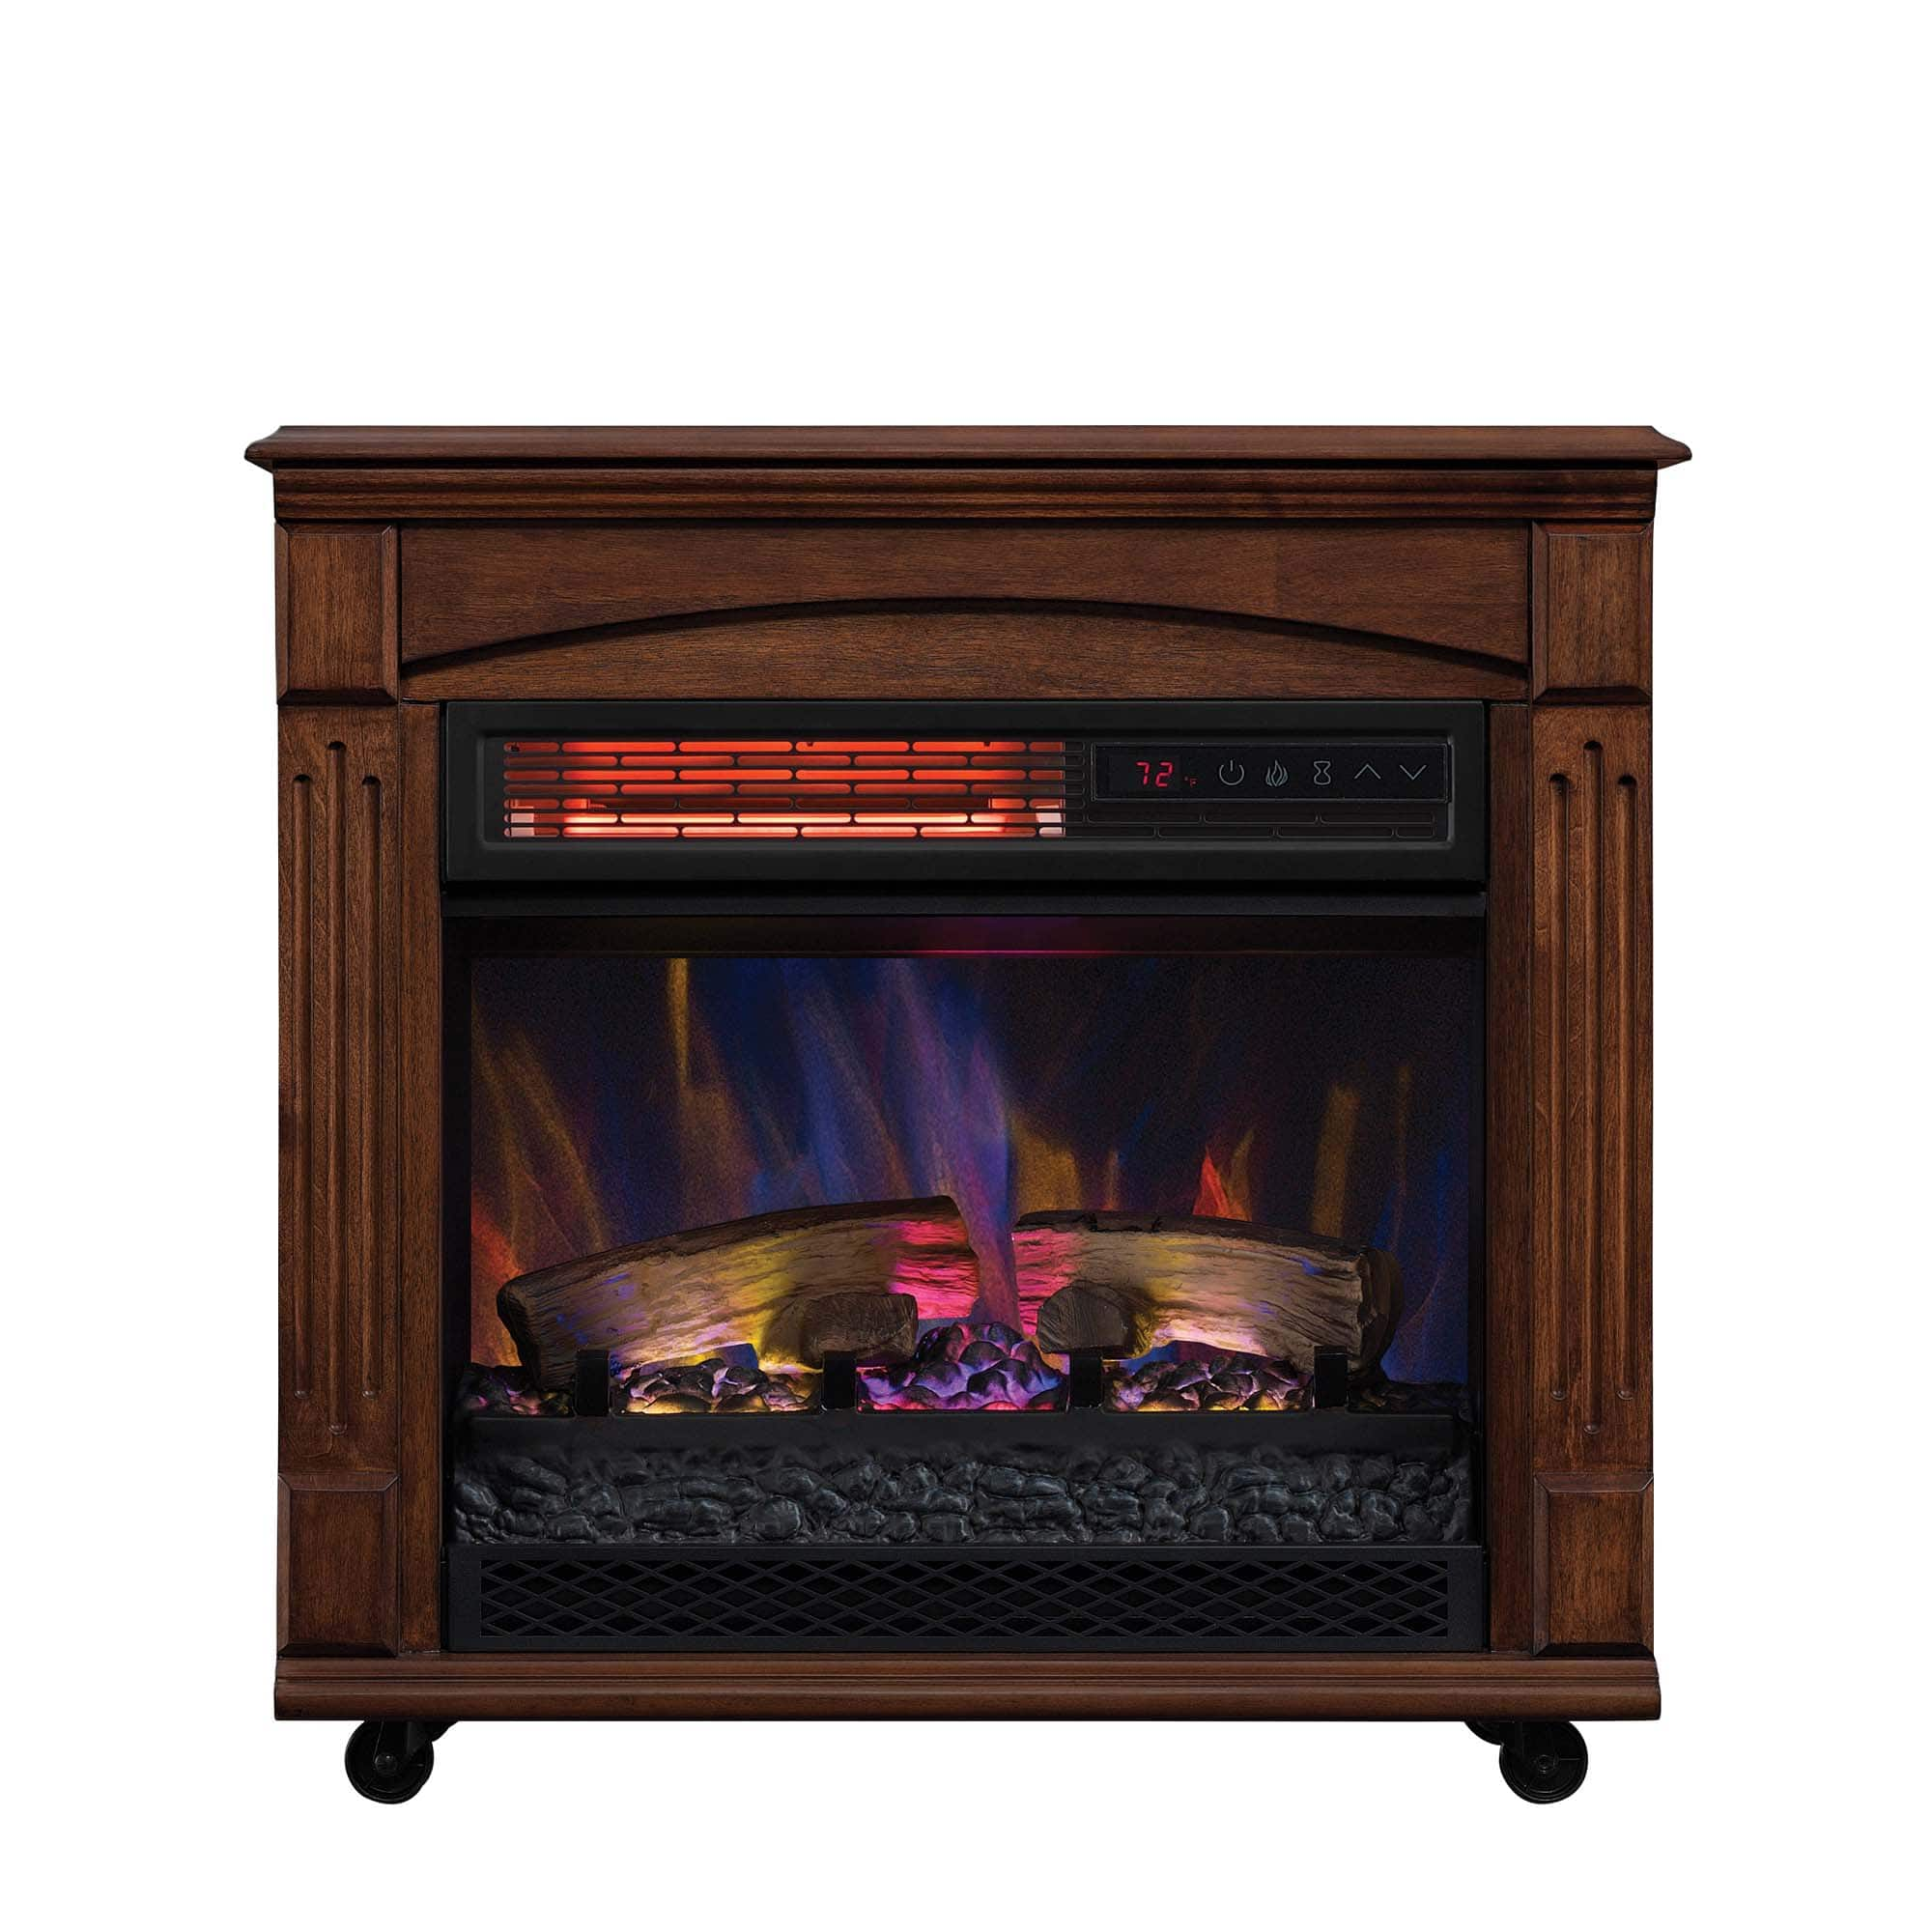 Electric Fireplaces For Sale At Walmart Infrared Quartz Electric Fireplace Space Heater For 64 00 At